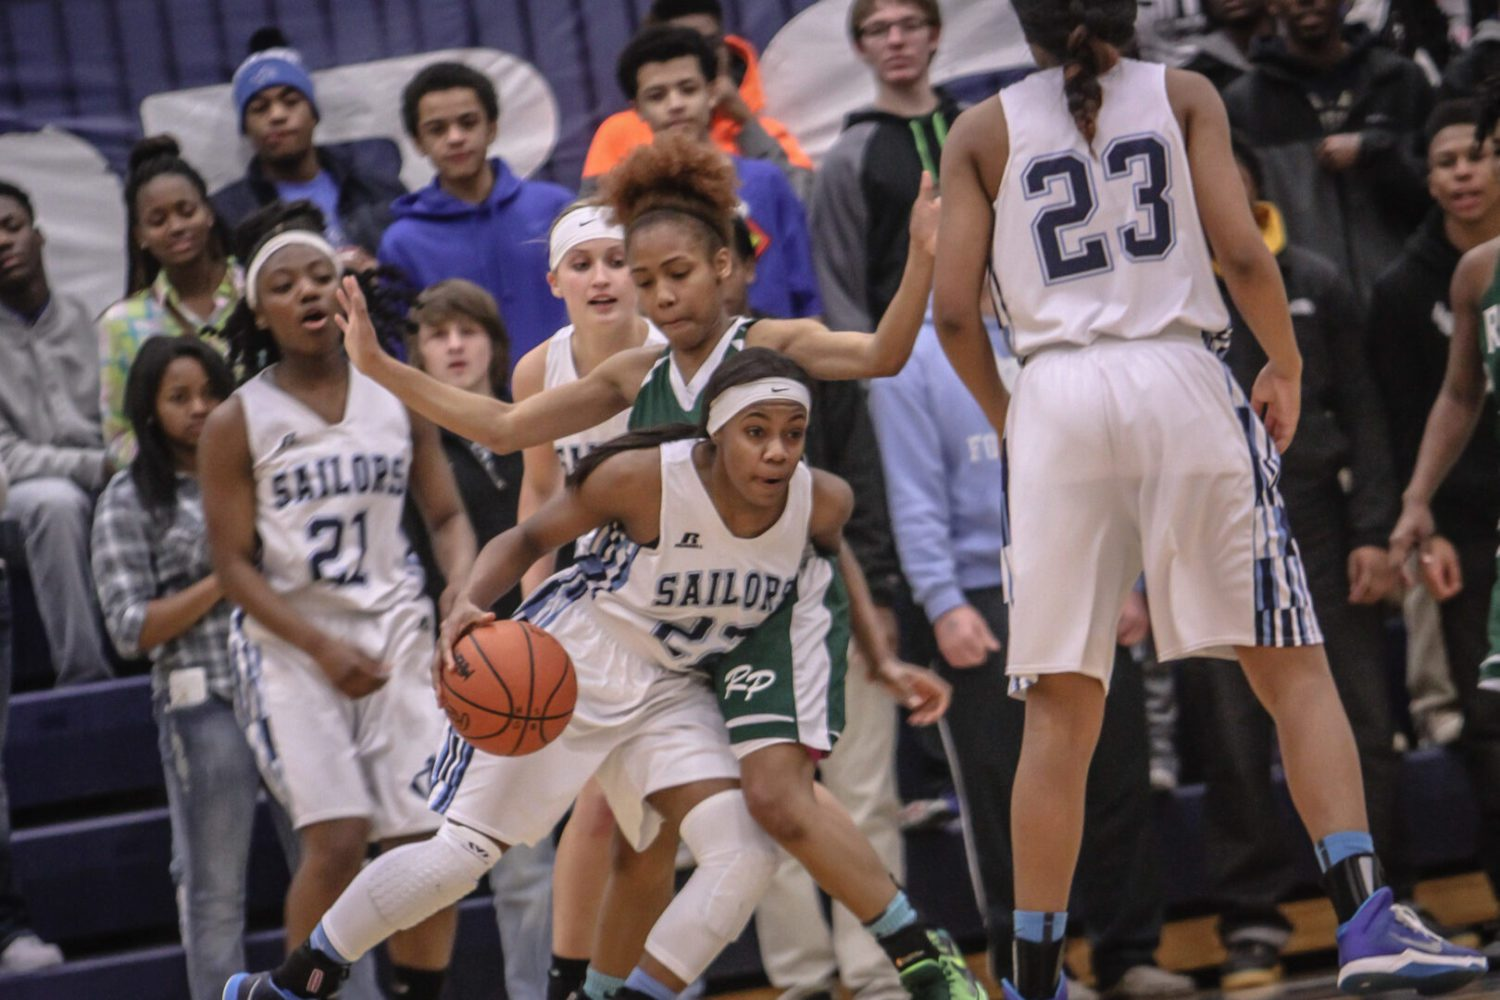 Mona Shores girls rally in the second half to beat Reeths-Puffer 50-46 in a Class A district showdown